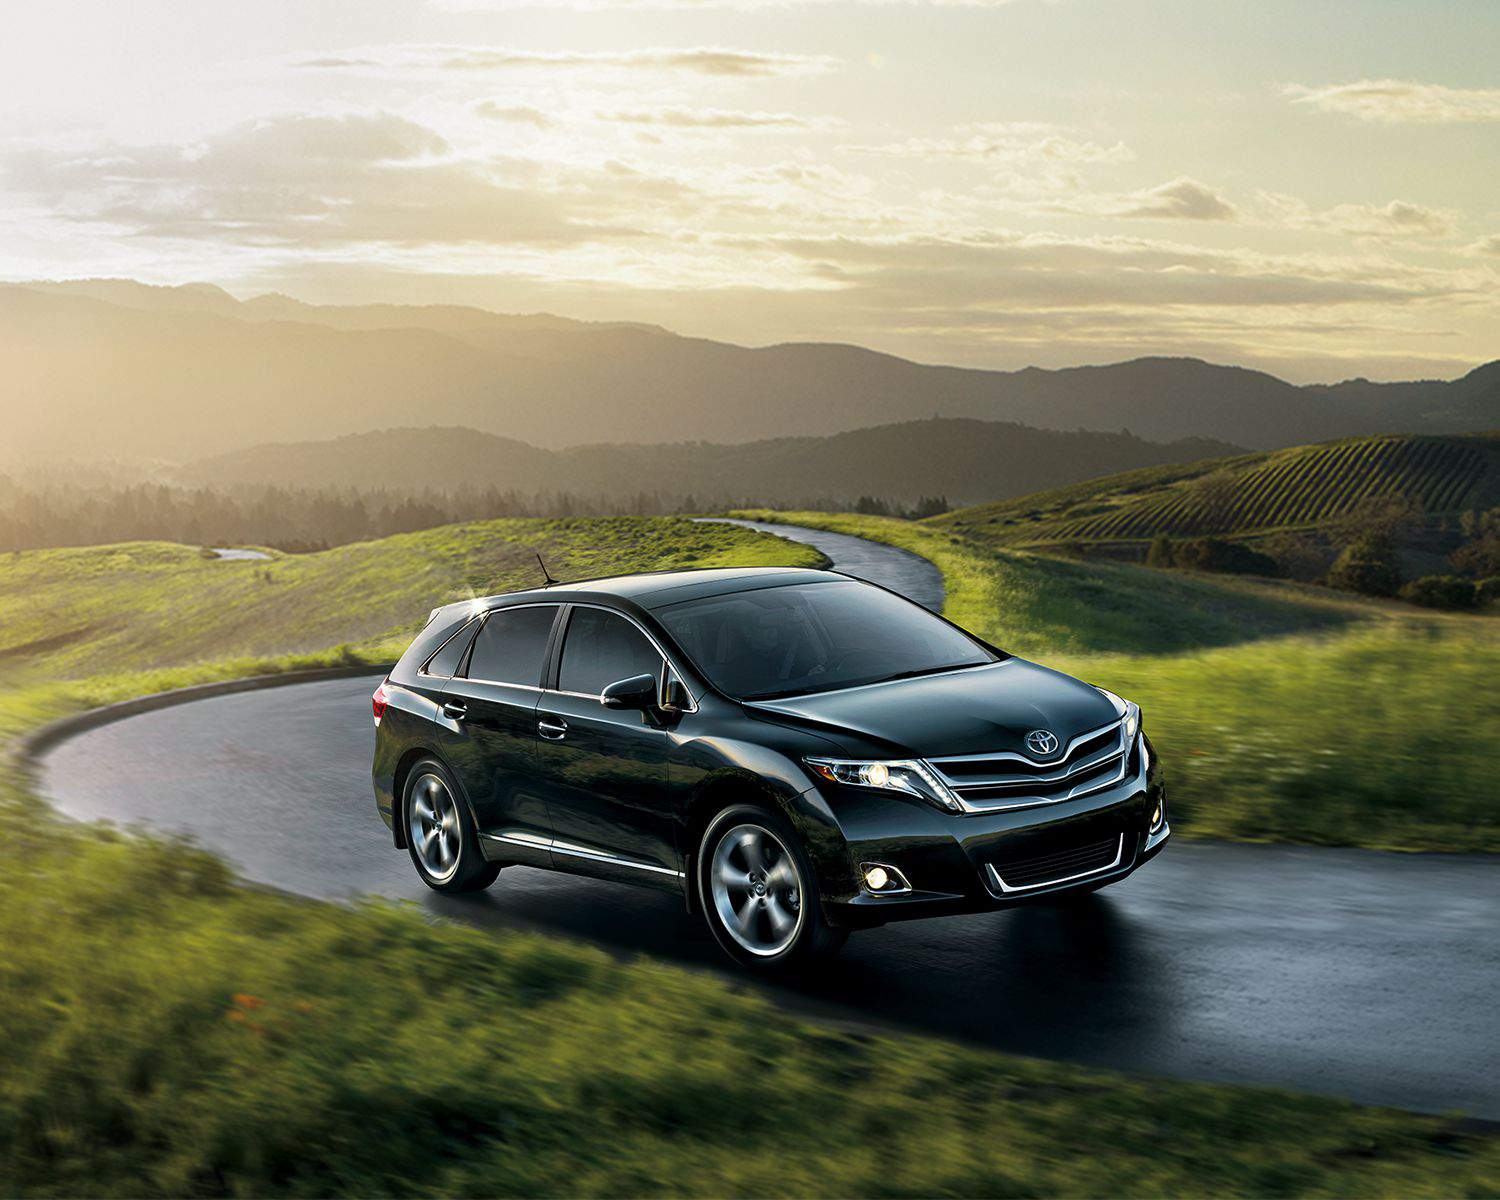 Venza V6 AWD shown in Midnight Black Metallic